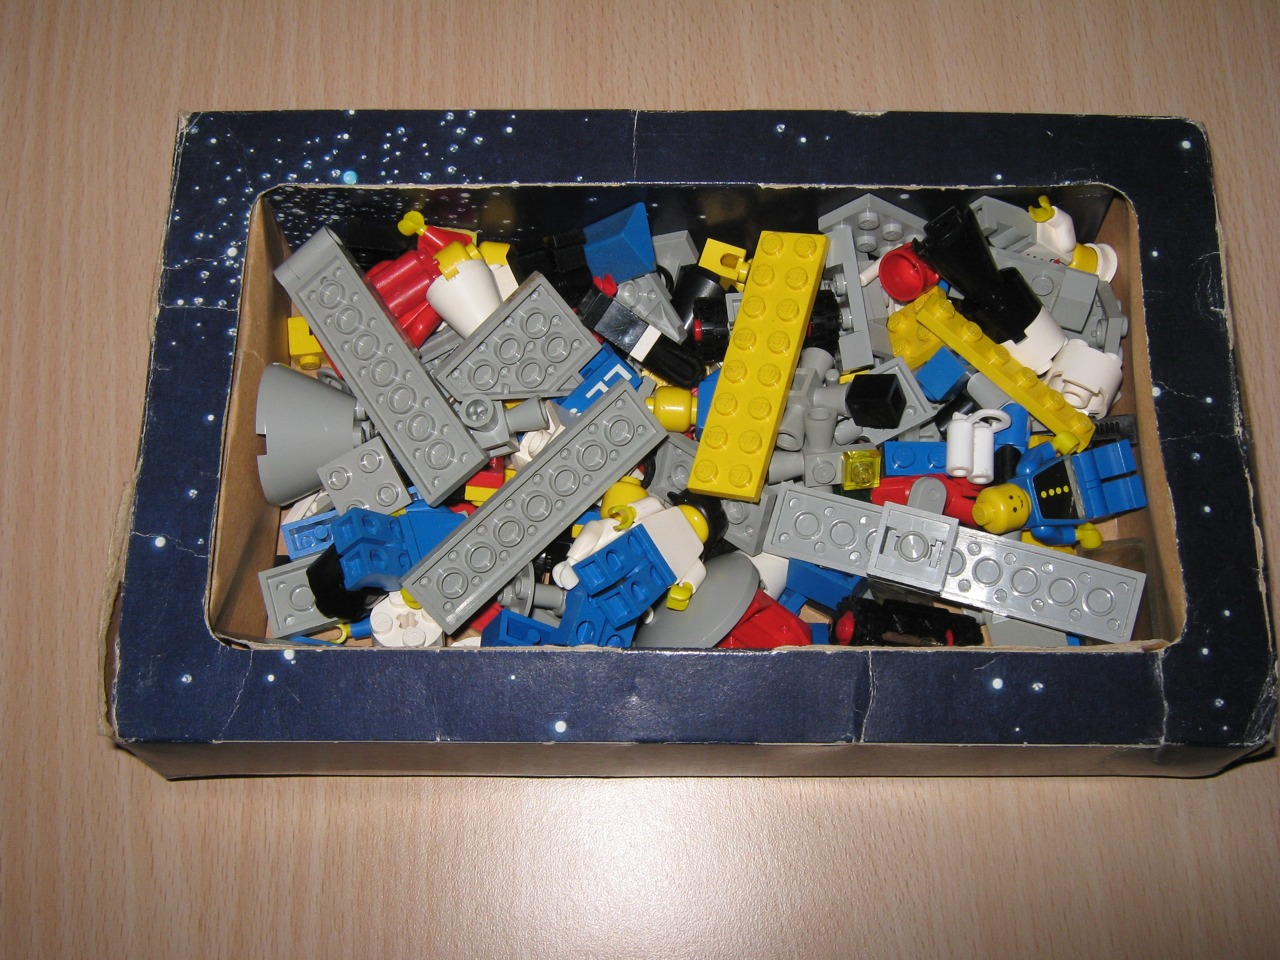 Space set released in 1978 it was one of the very first sets of lego